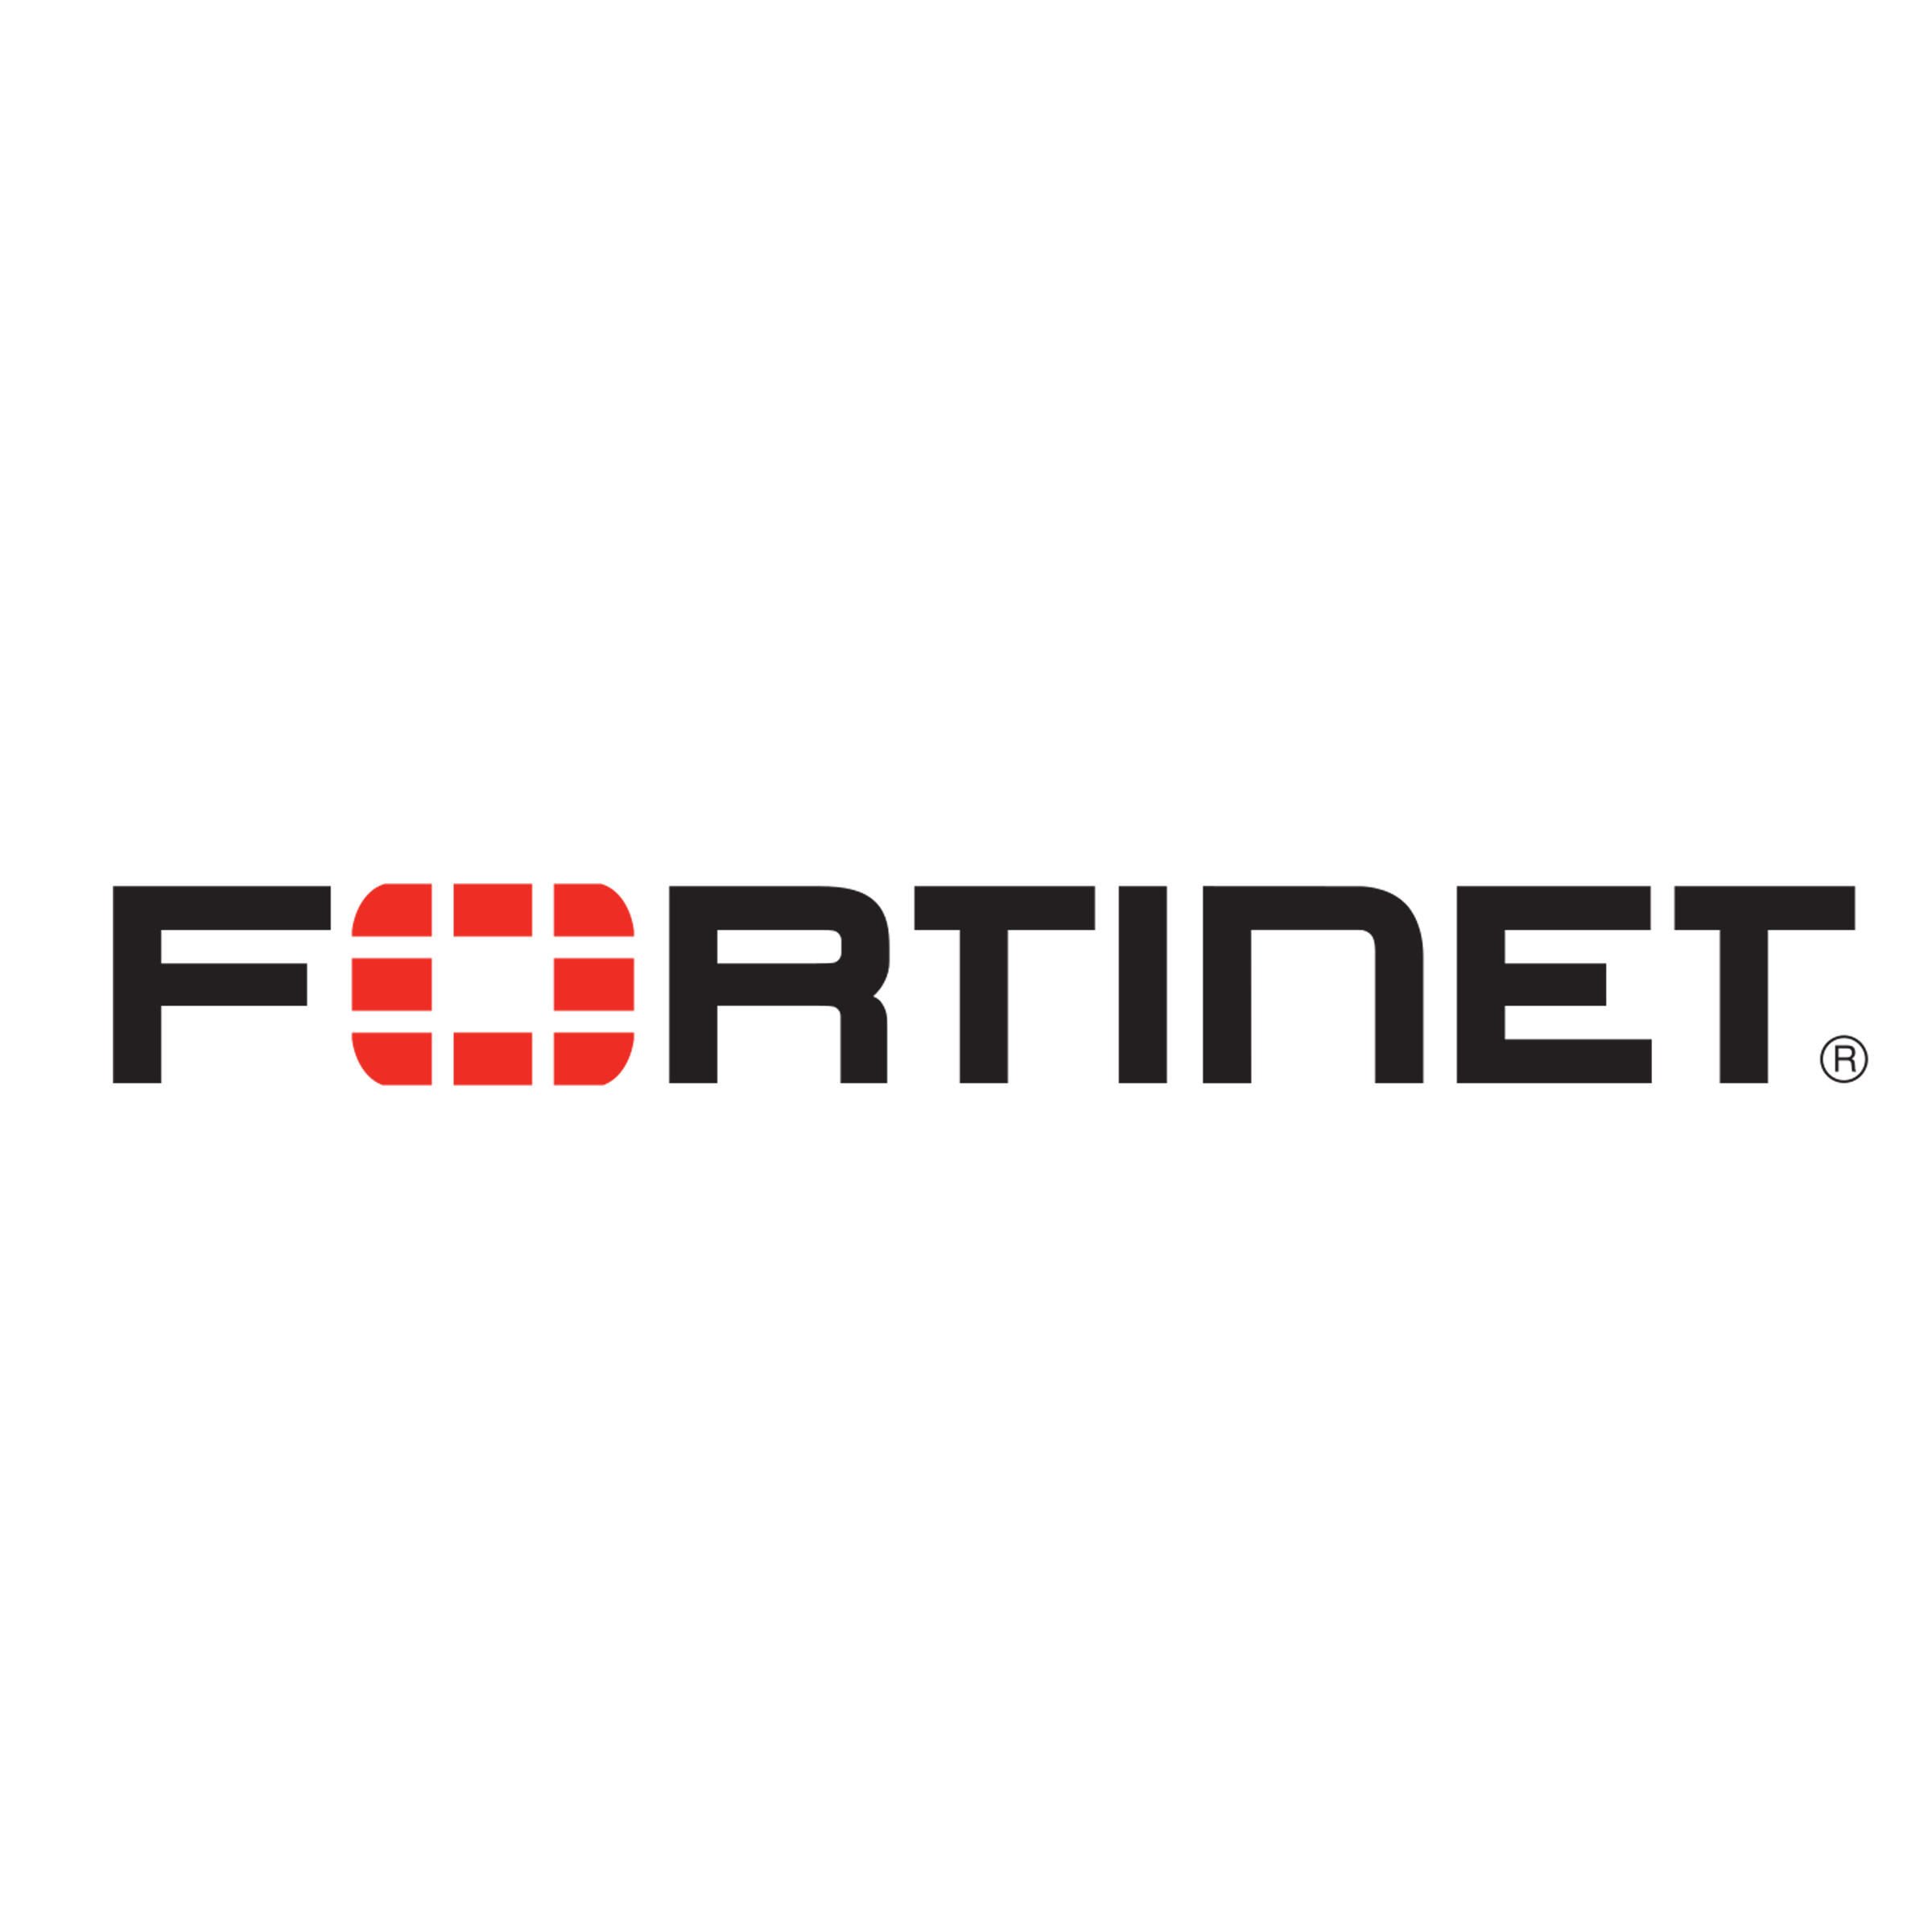 31fortinet